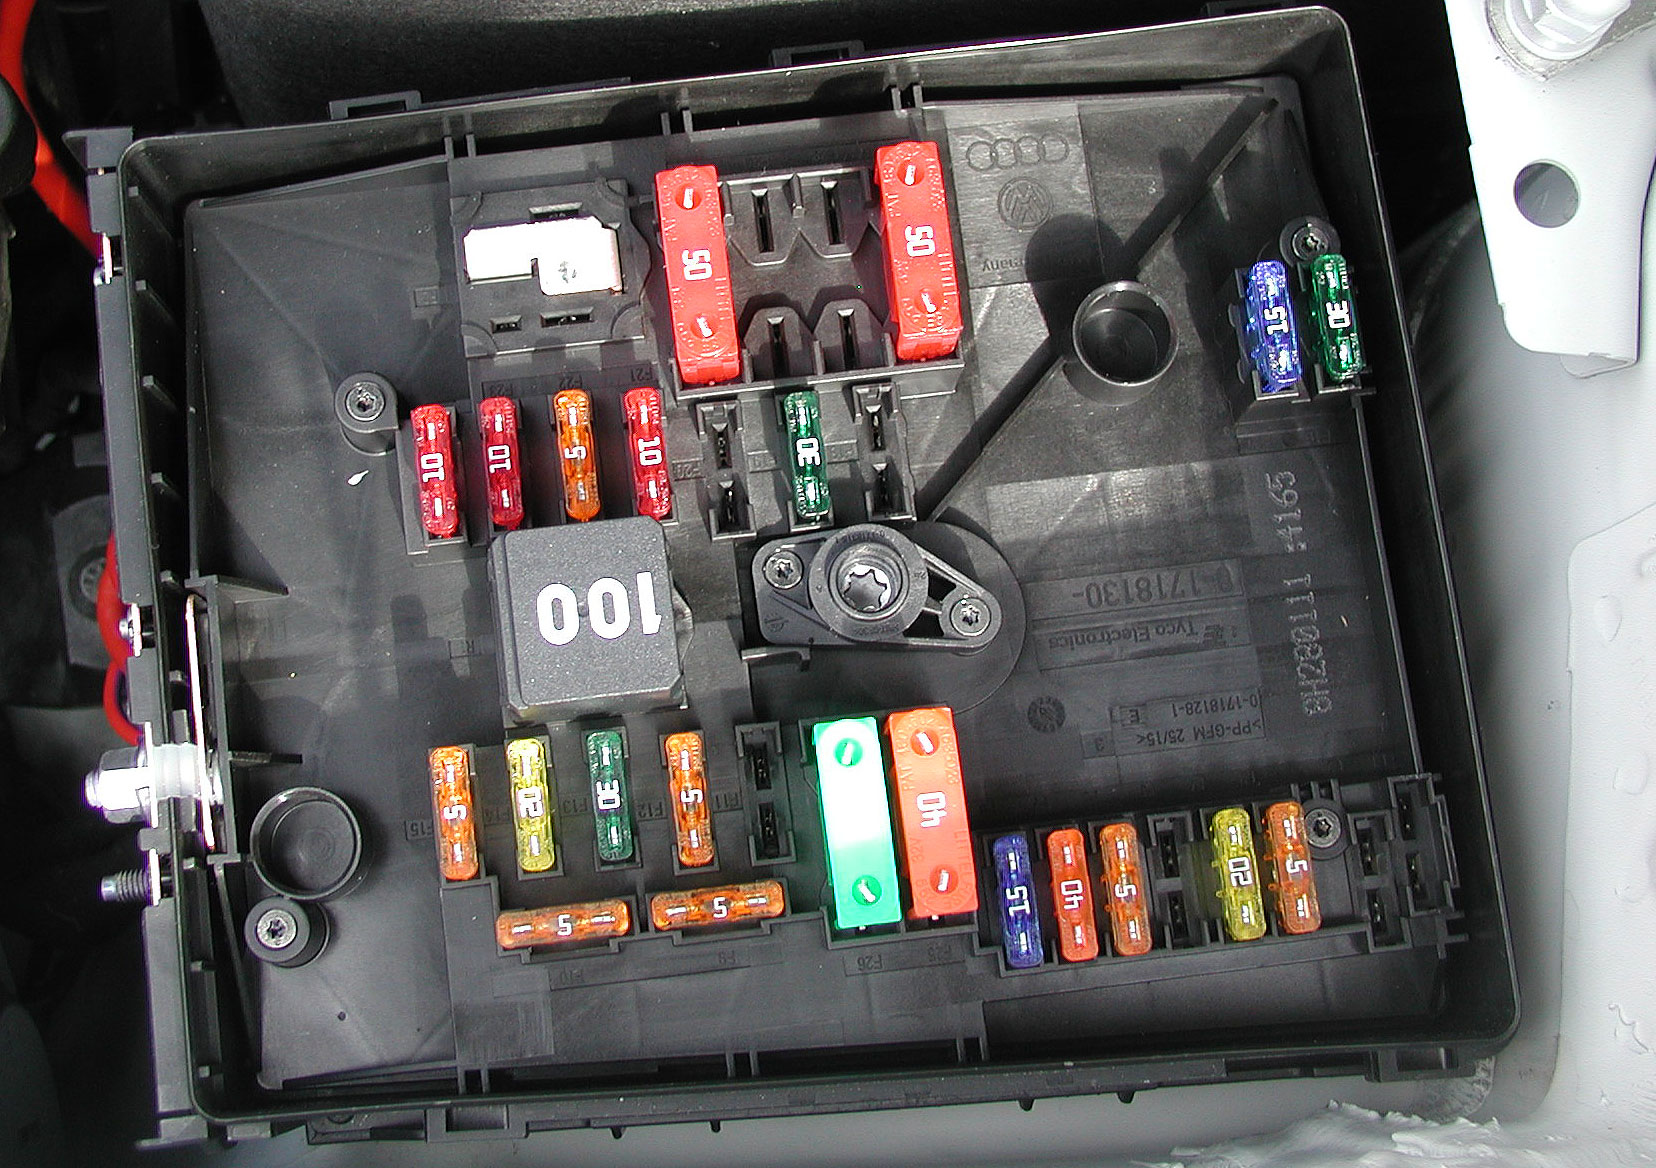 engineFuses2 golf mkv 1 9 tdi rcd 310 battery drain the volkswagen club of 2010 vw golf fuse box diagram at mr168.co